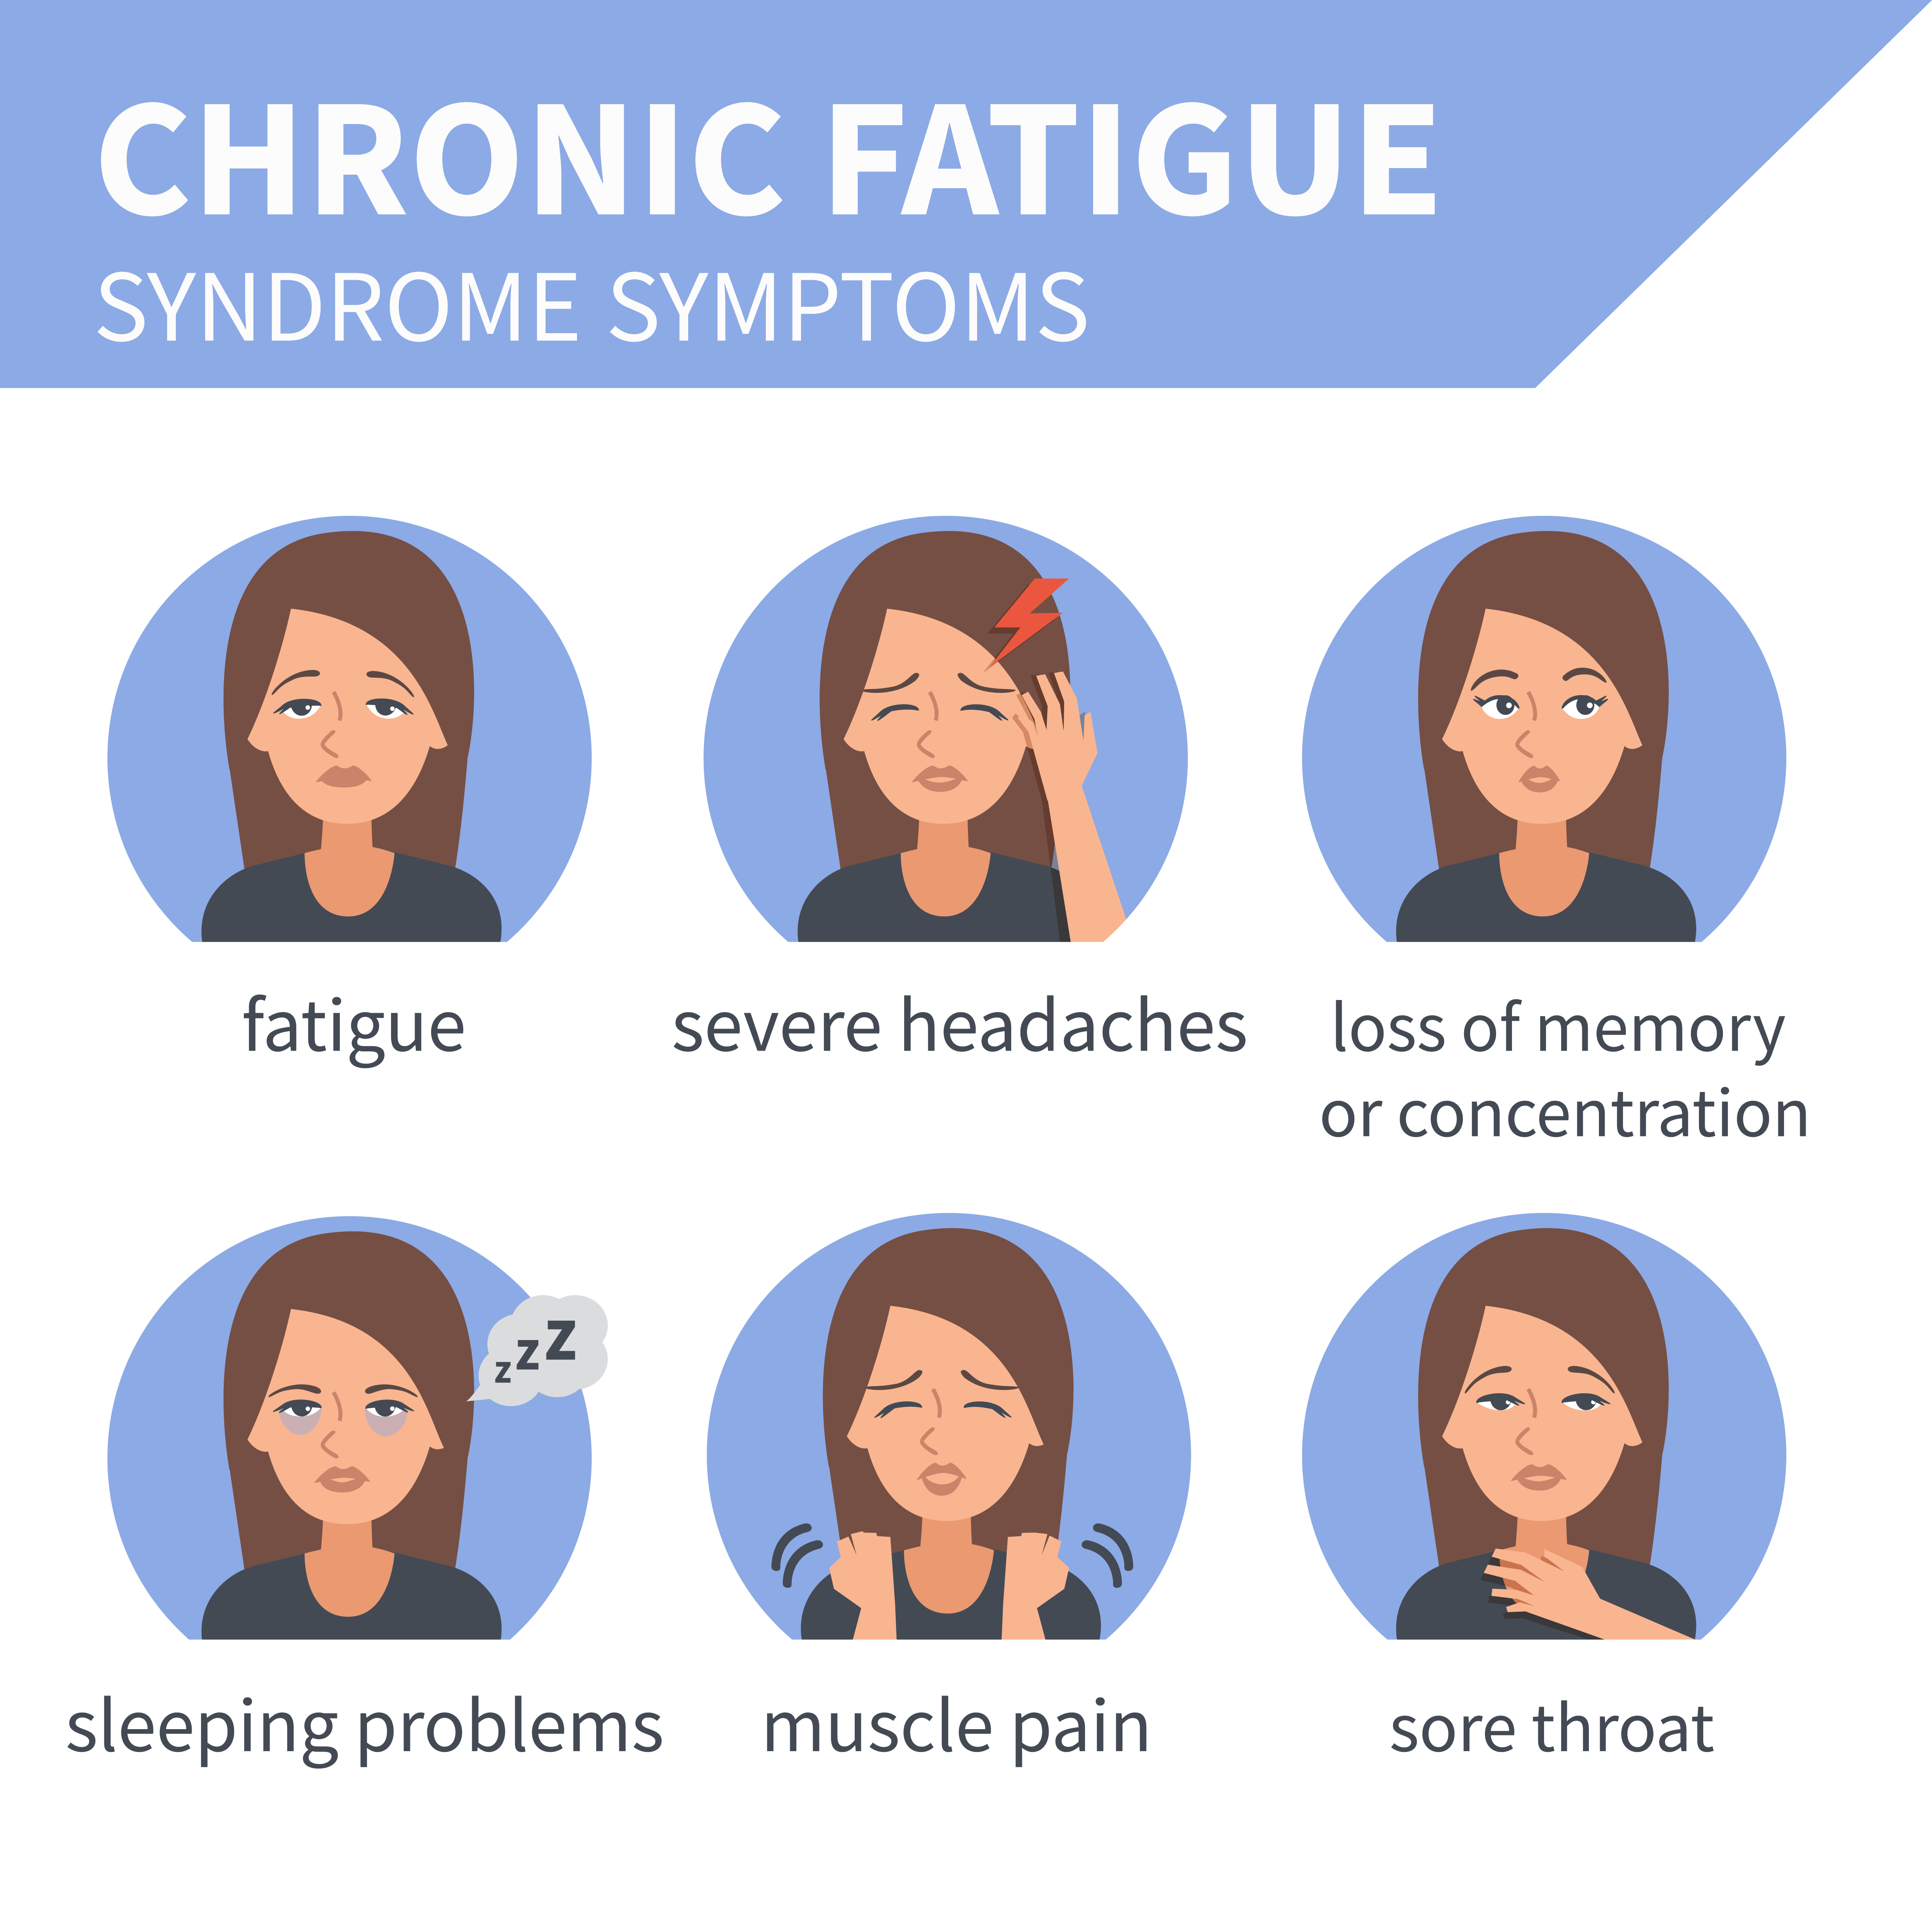 The most significant symptoms of chronic fatigue